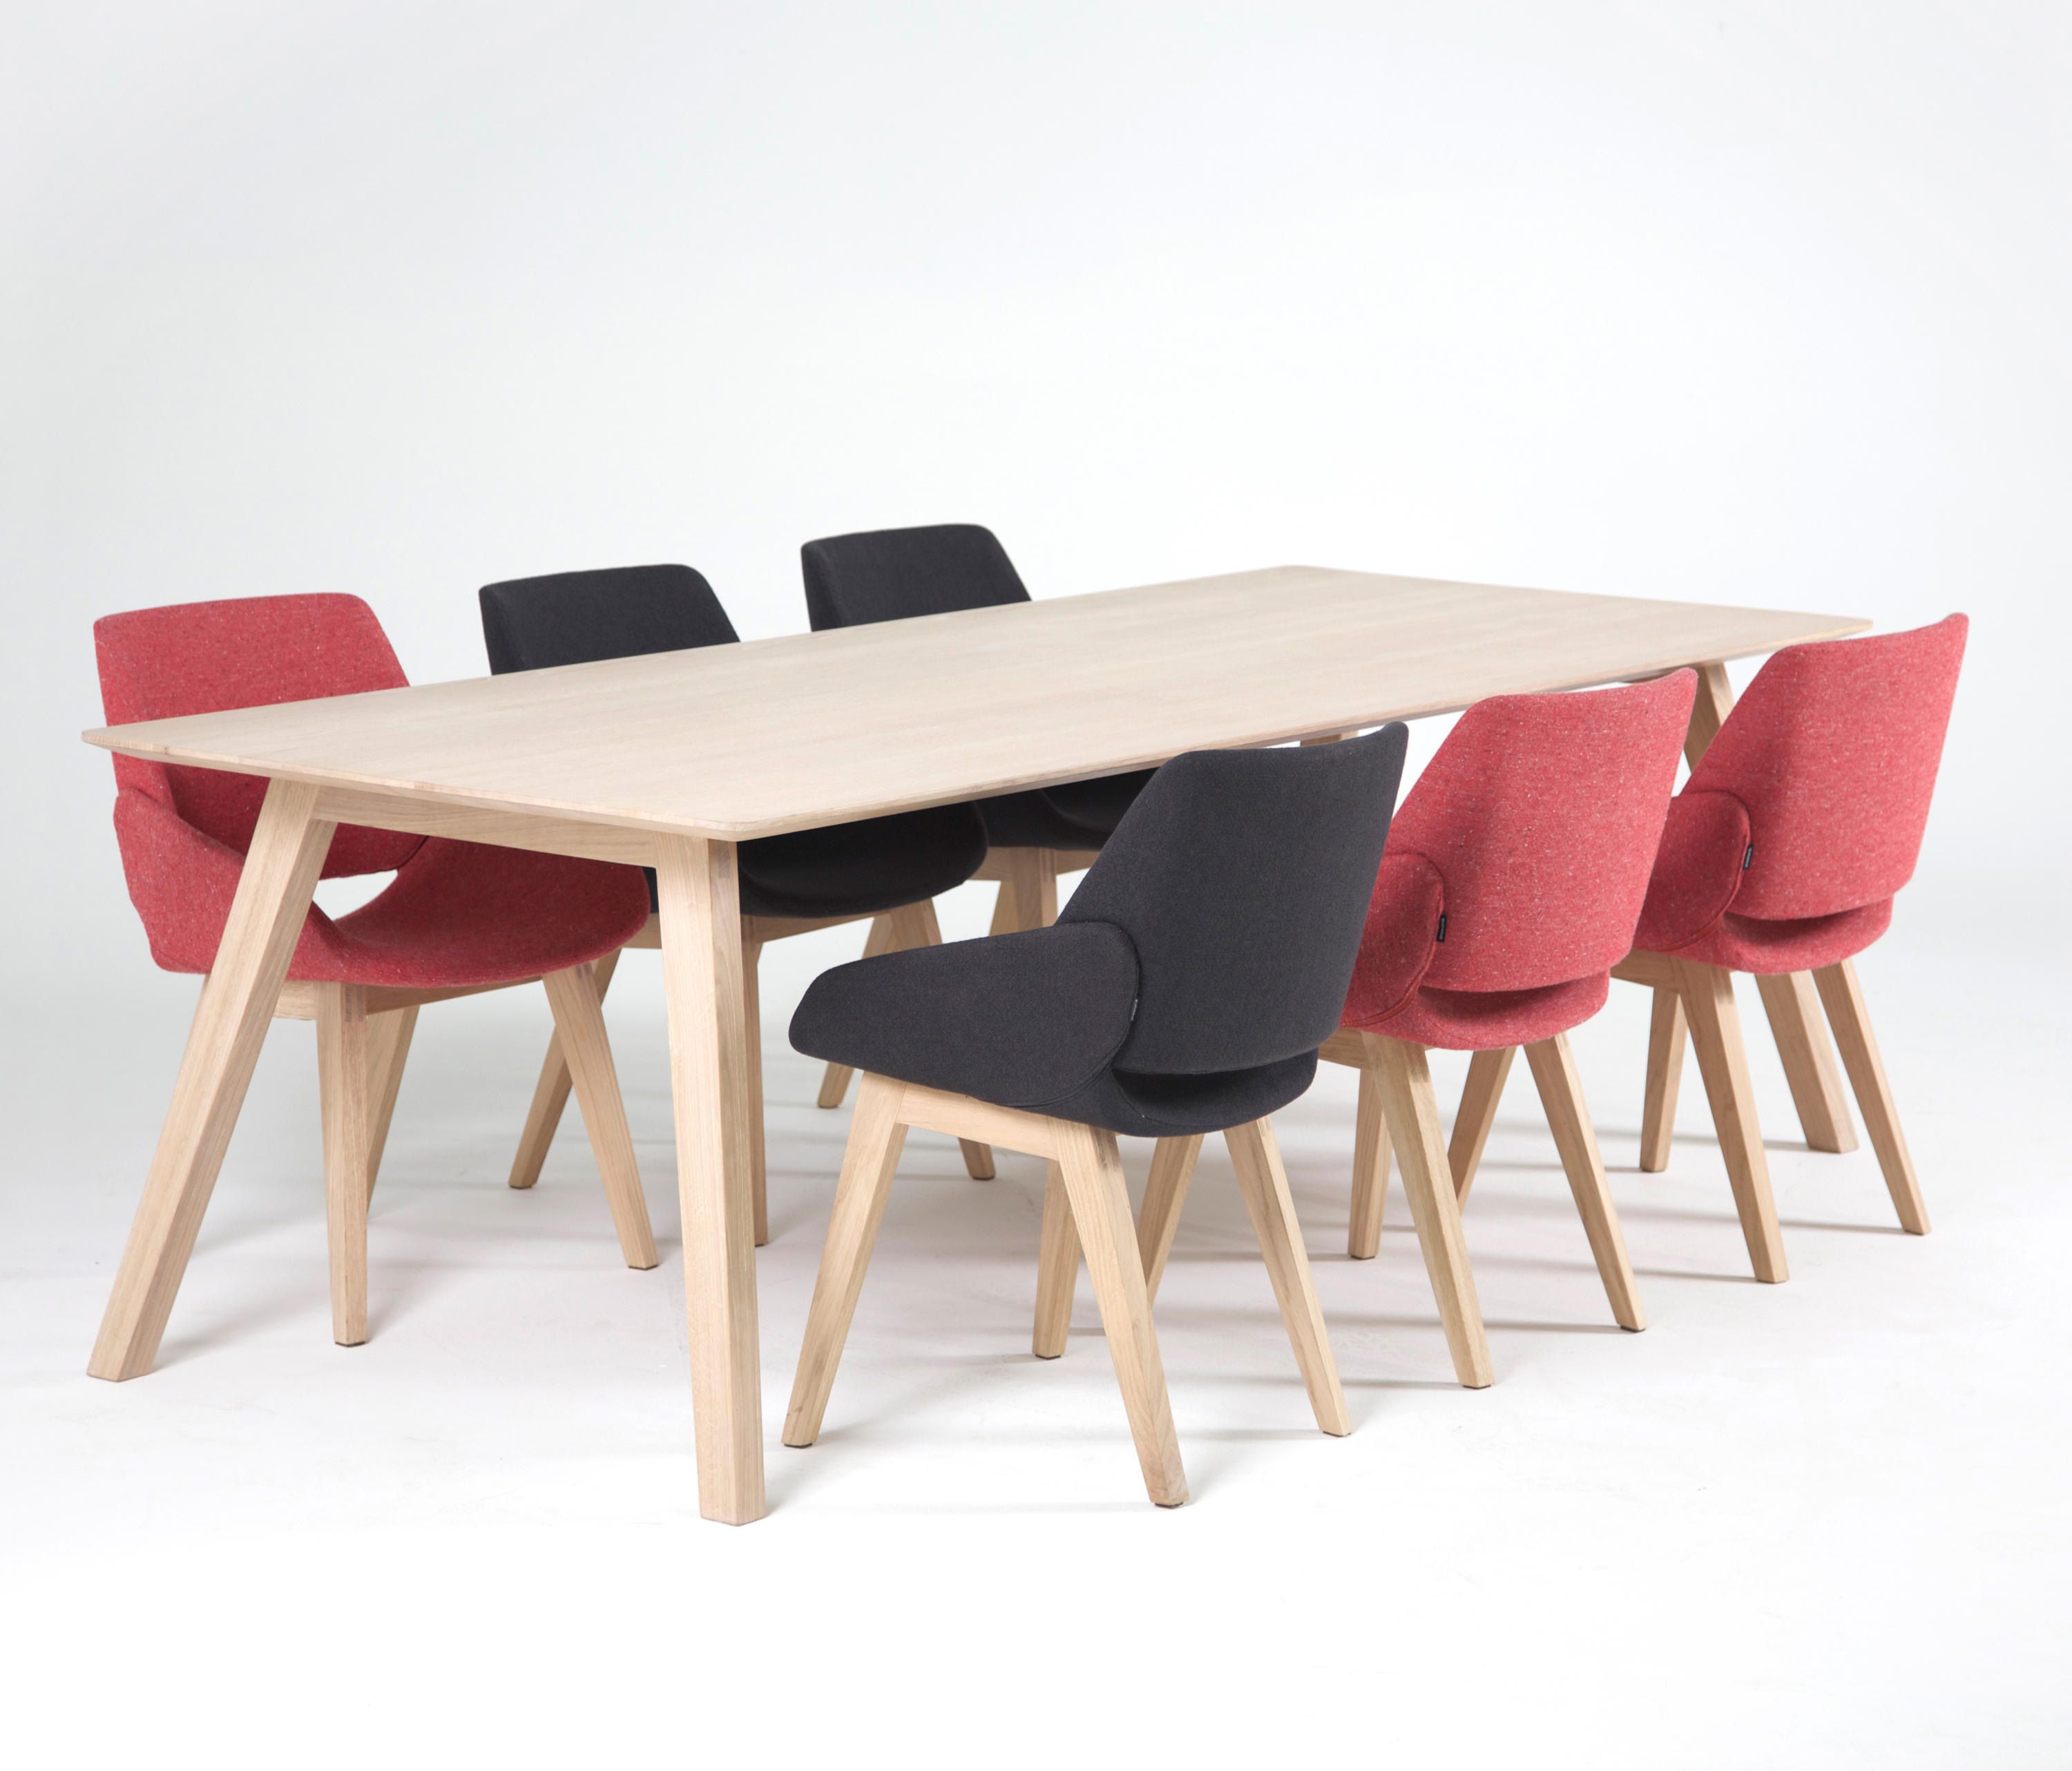 Monk Chair Chairs From Prostoria Architonic